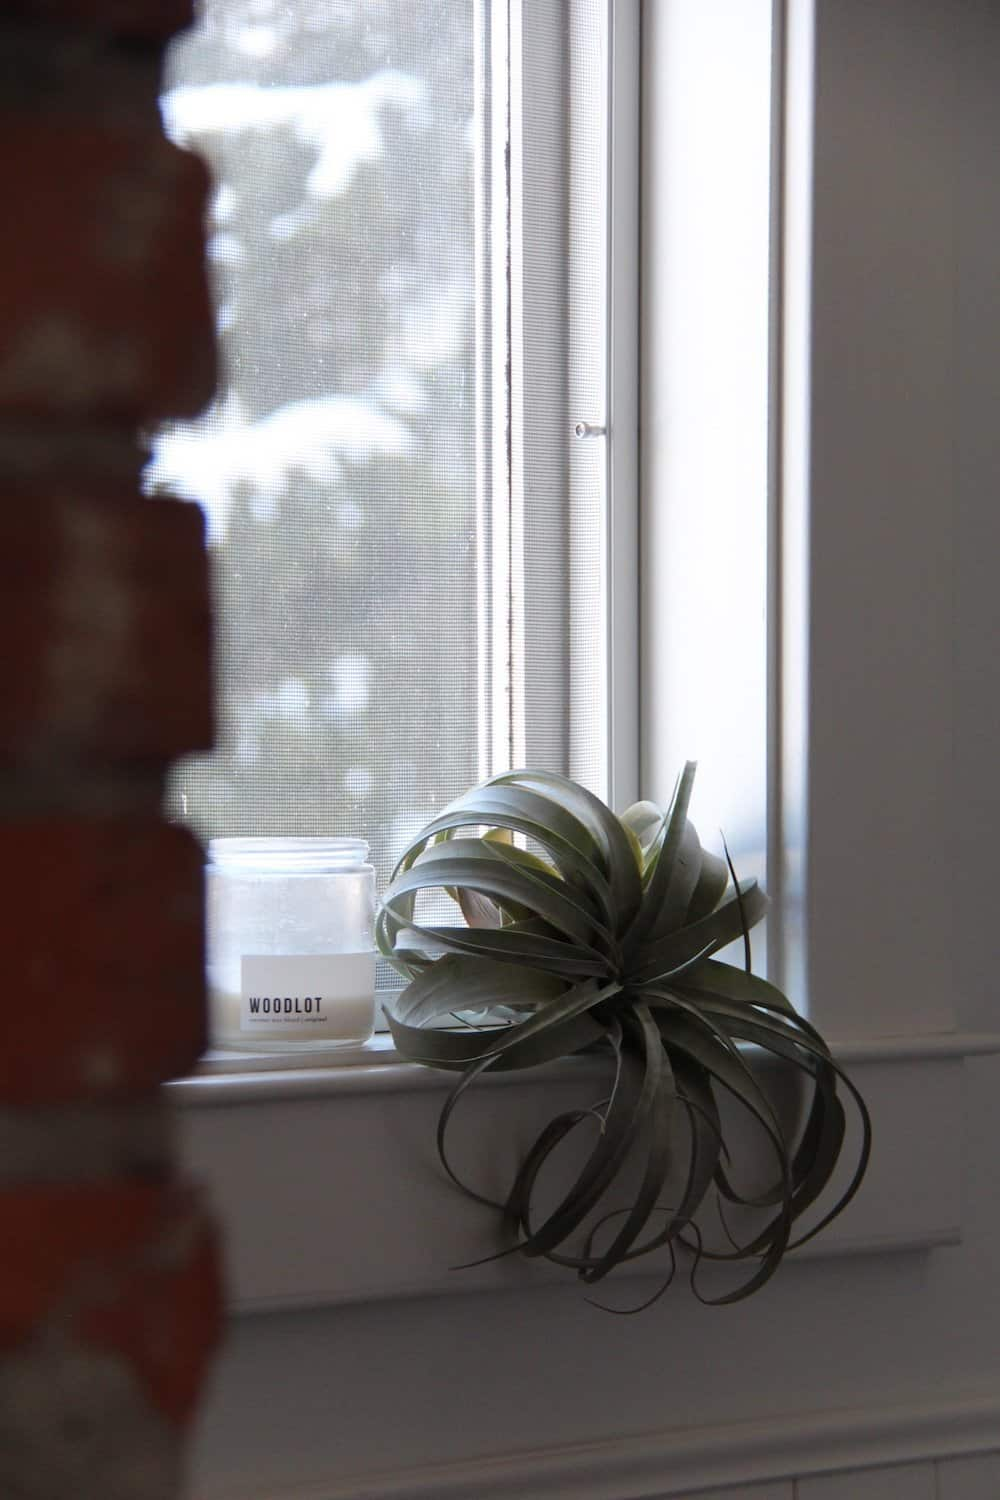 Green tillandsia large air plant and white candle on white windowsill with brick chimney in foreground